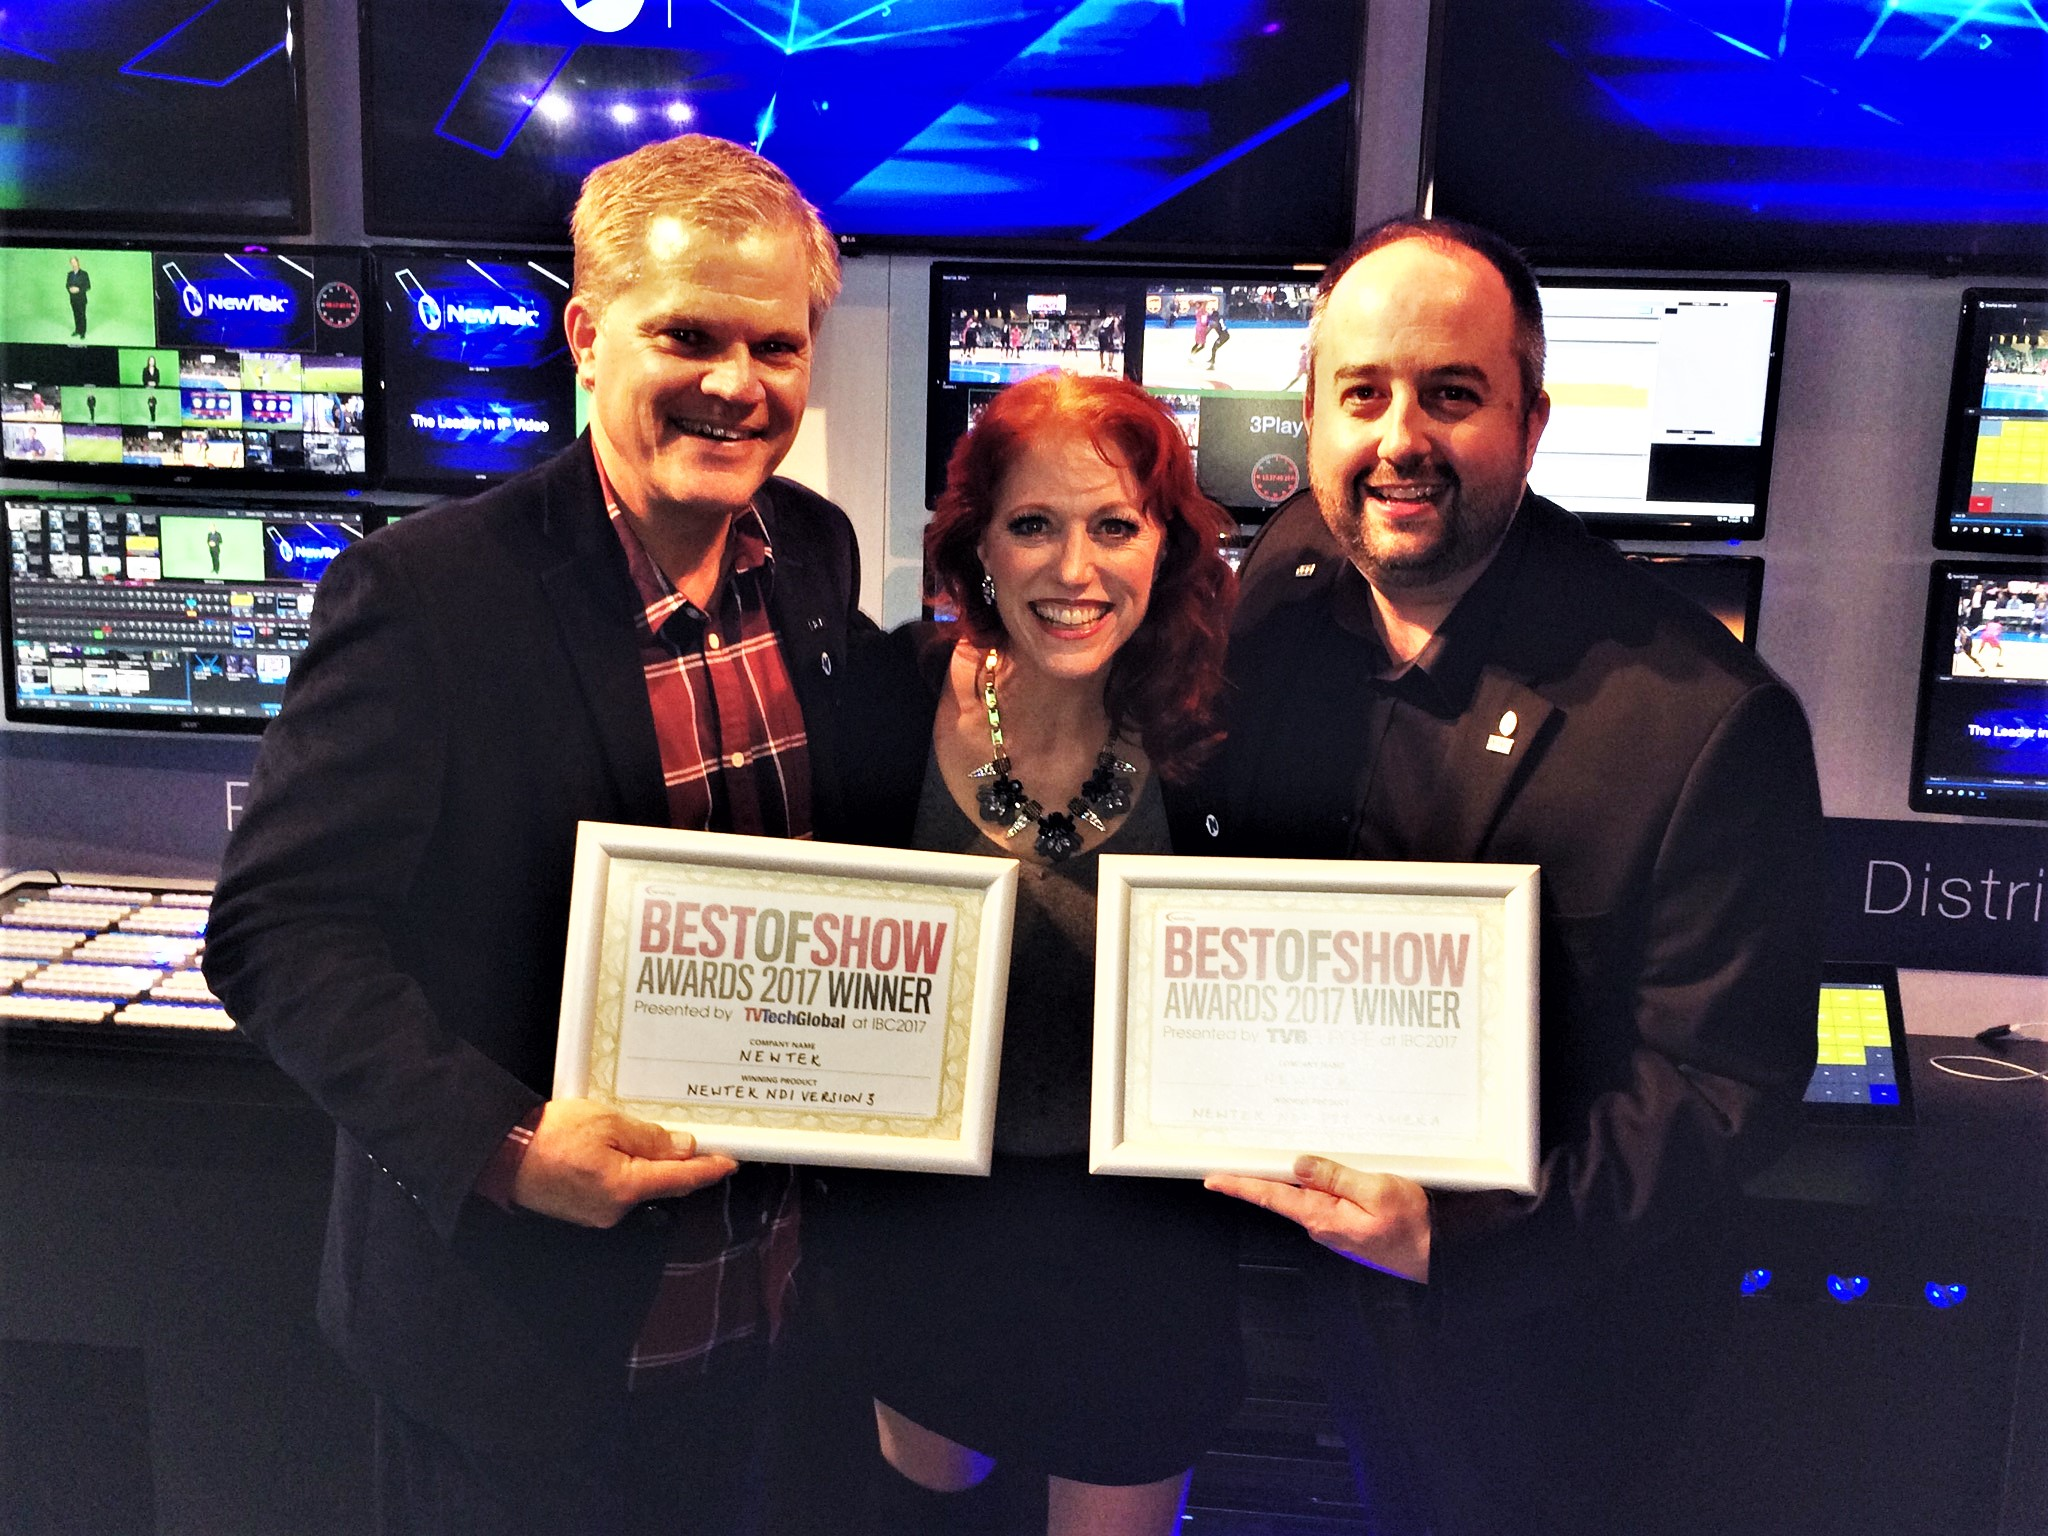 Rex Olson, Kiki Stockhammer and Will Waters happily display the NewBay Media Best of Show Awards for NDI<sup>®</sup> version 3 and NewTek NDI<sup>®</sup> PTZ Camera.